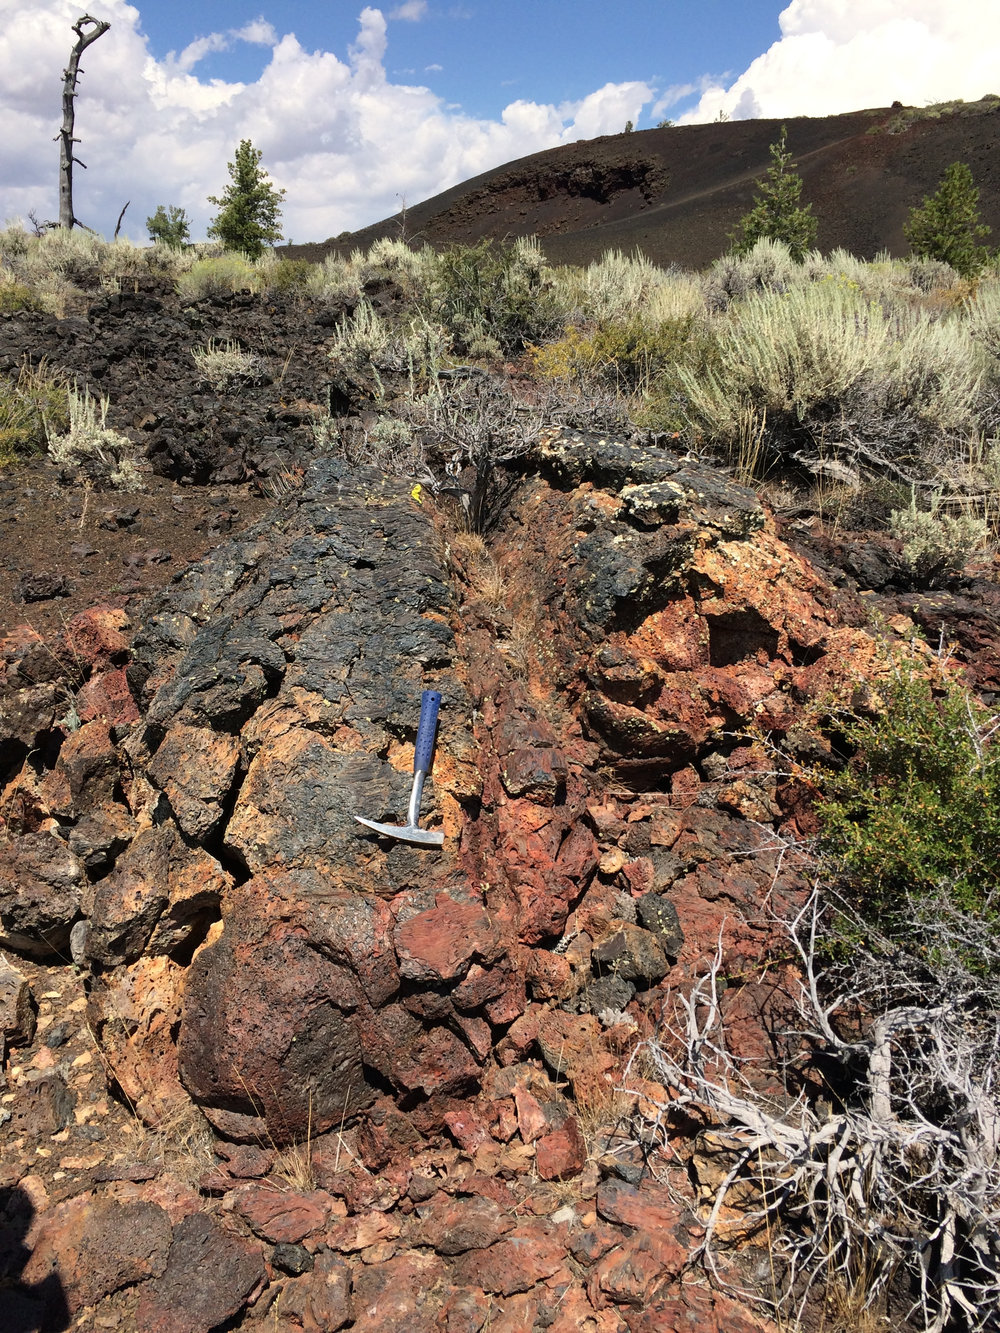 Altered basalt lobe, Craters of the Moon National Monument, Idaho